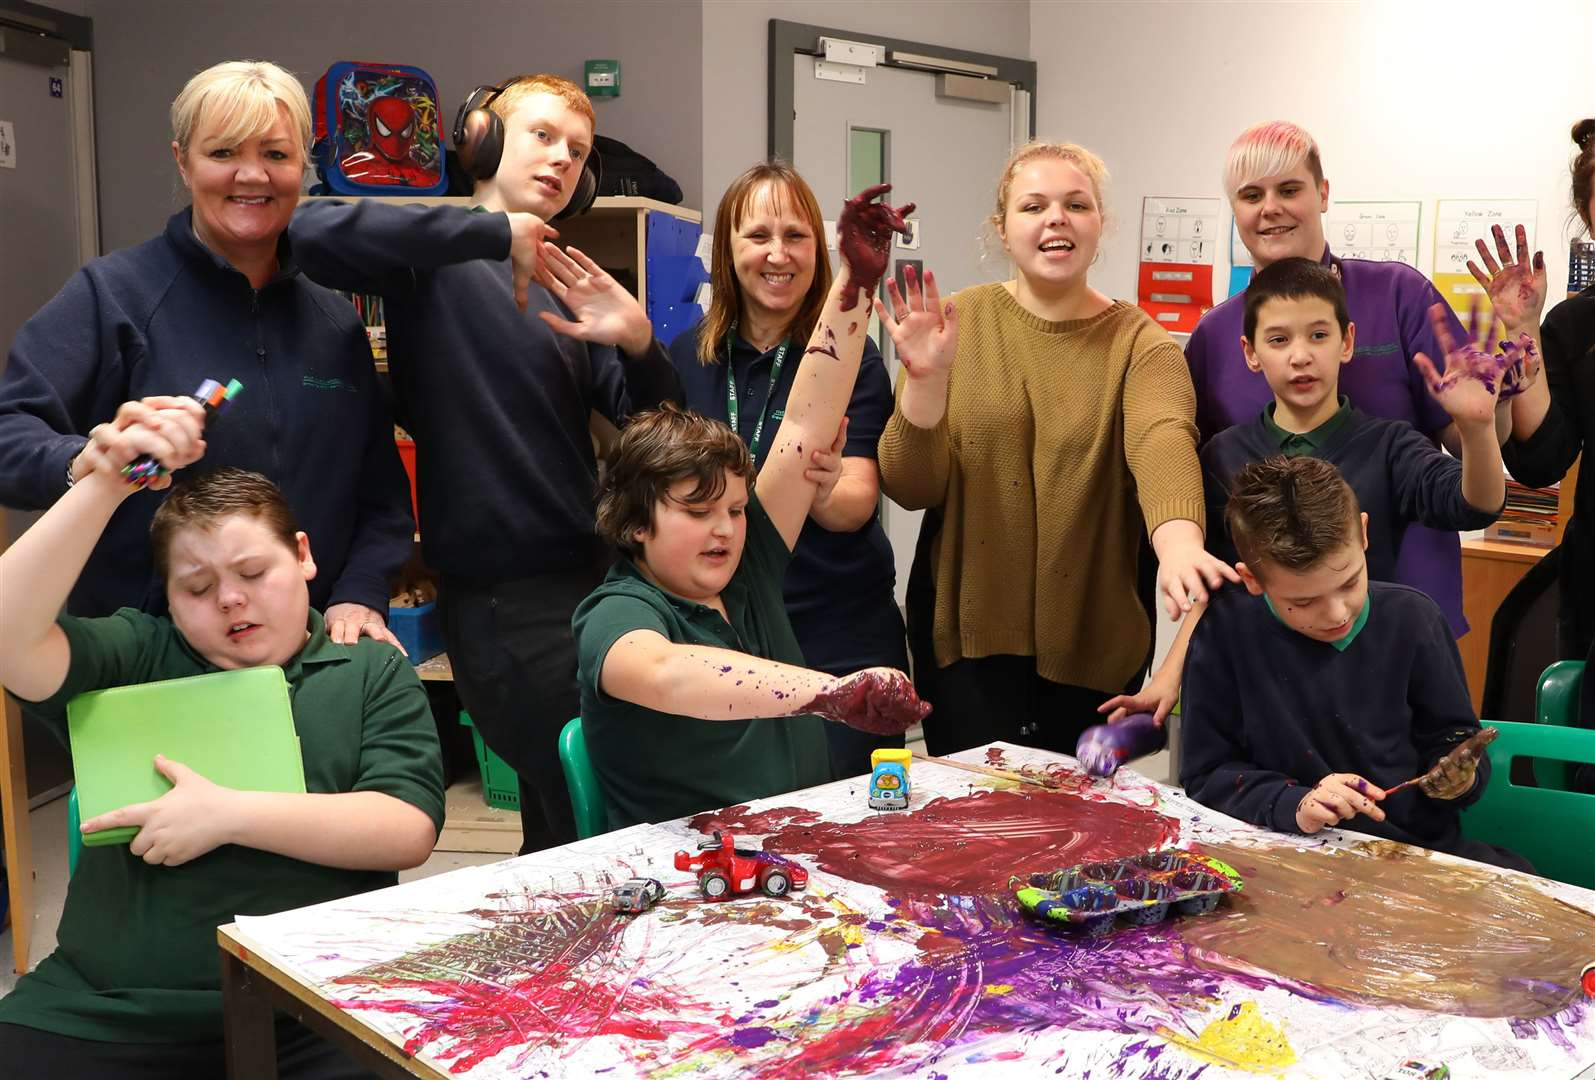 Pupils at Five Acre Wood School enjoy messy and creative fun as part of their curriculum Picture: Andy Jones